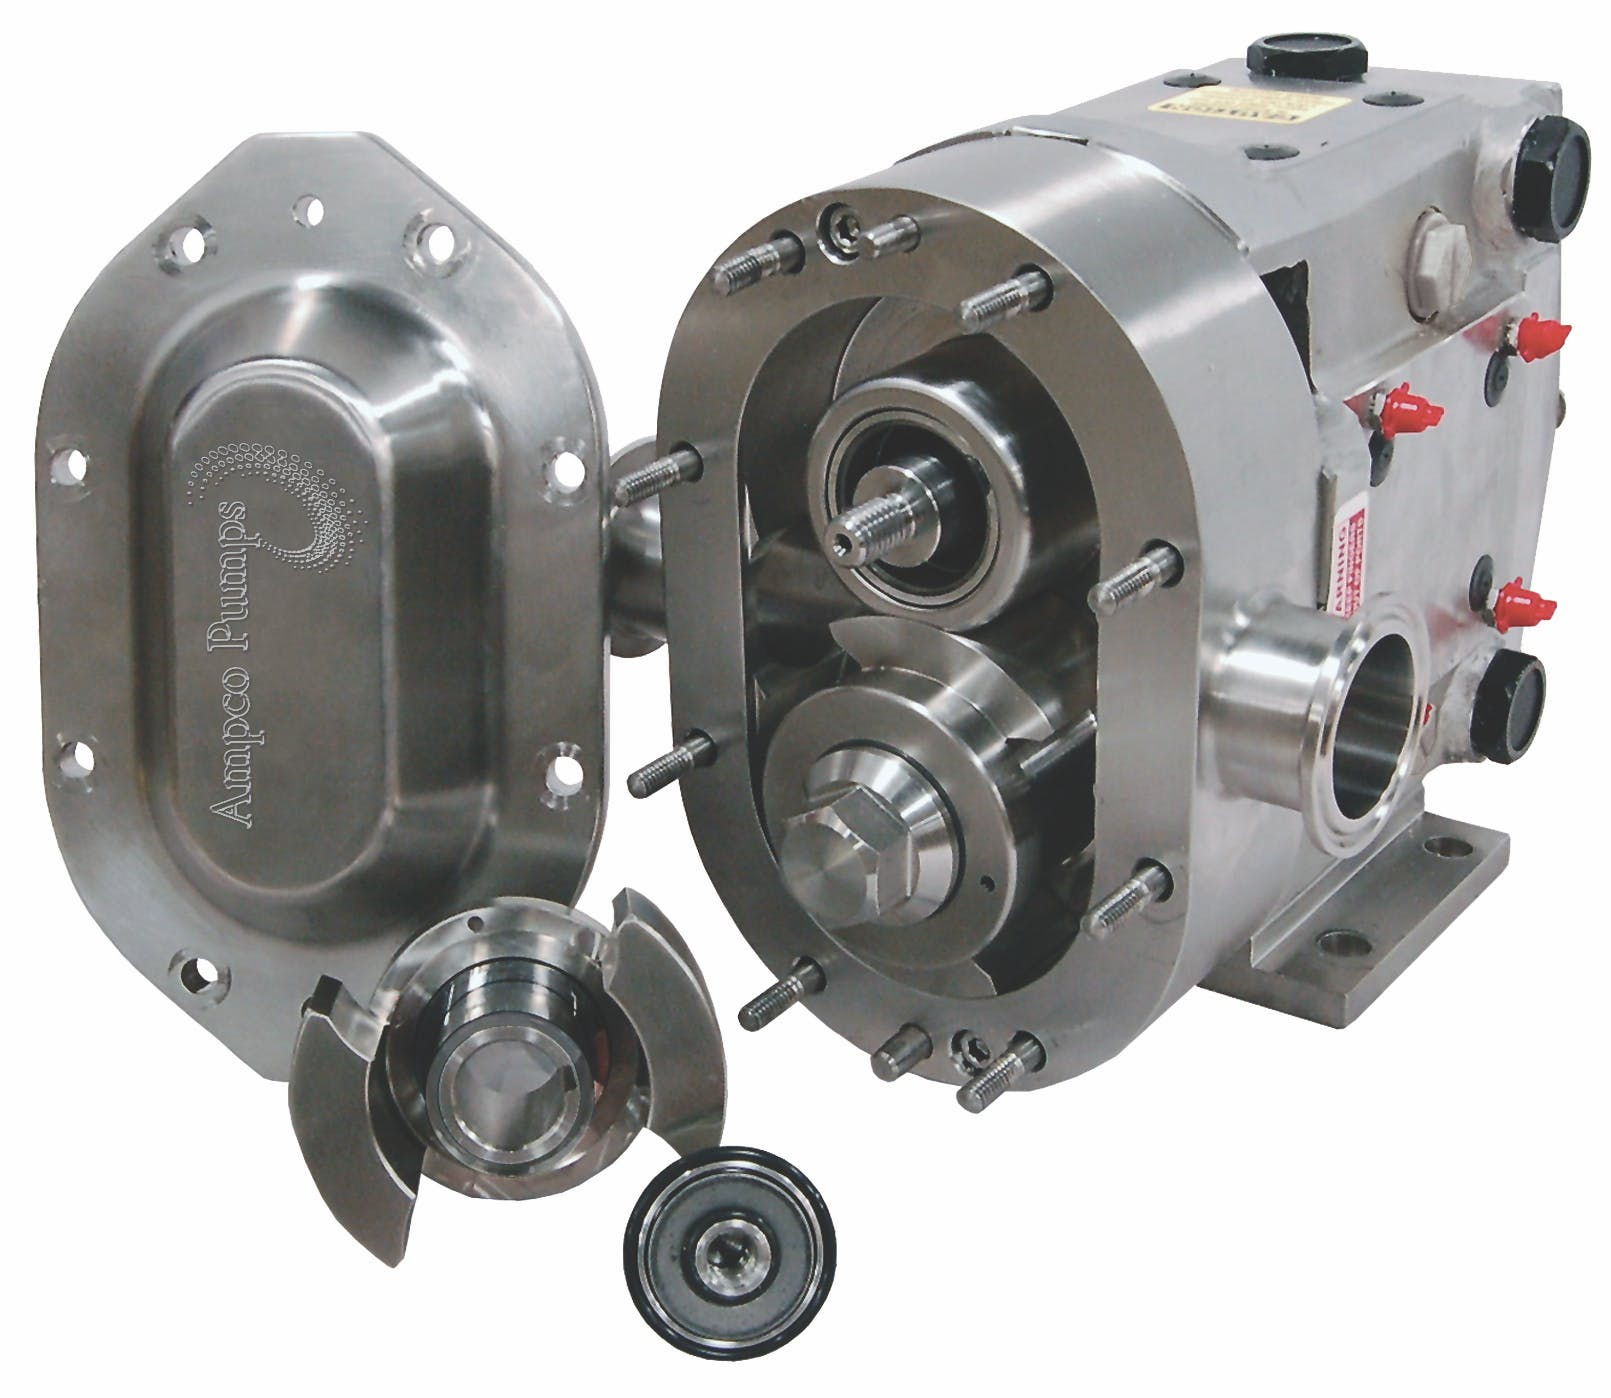 ZP Series positive displacement pumps  Sanitary pump sold by Ampco Pumps Co.